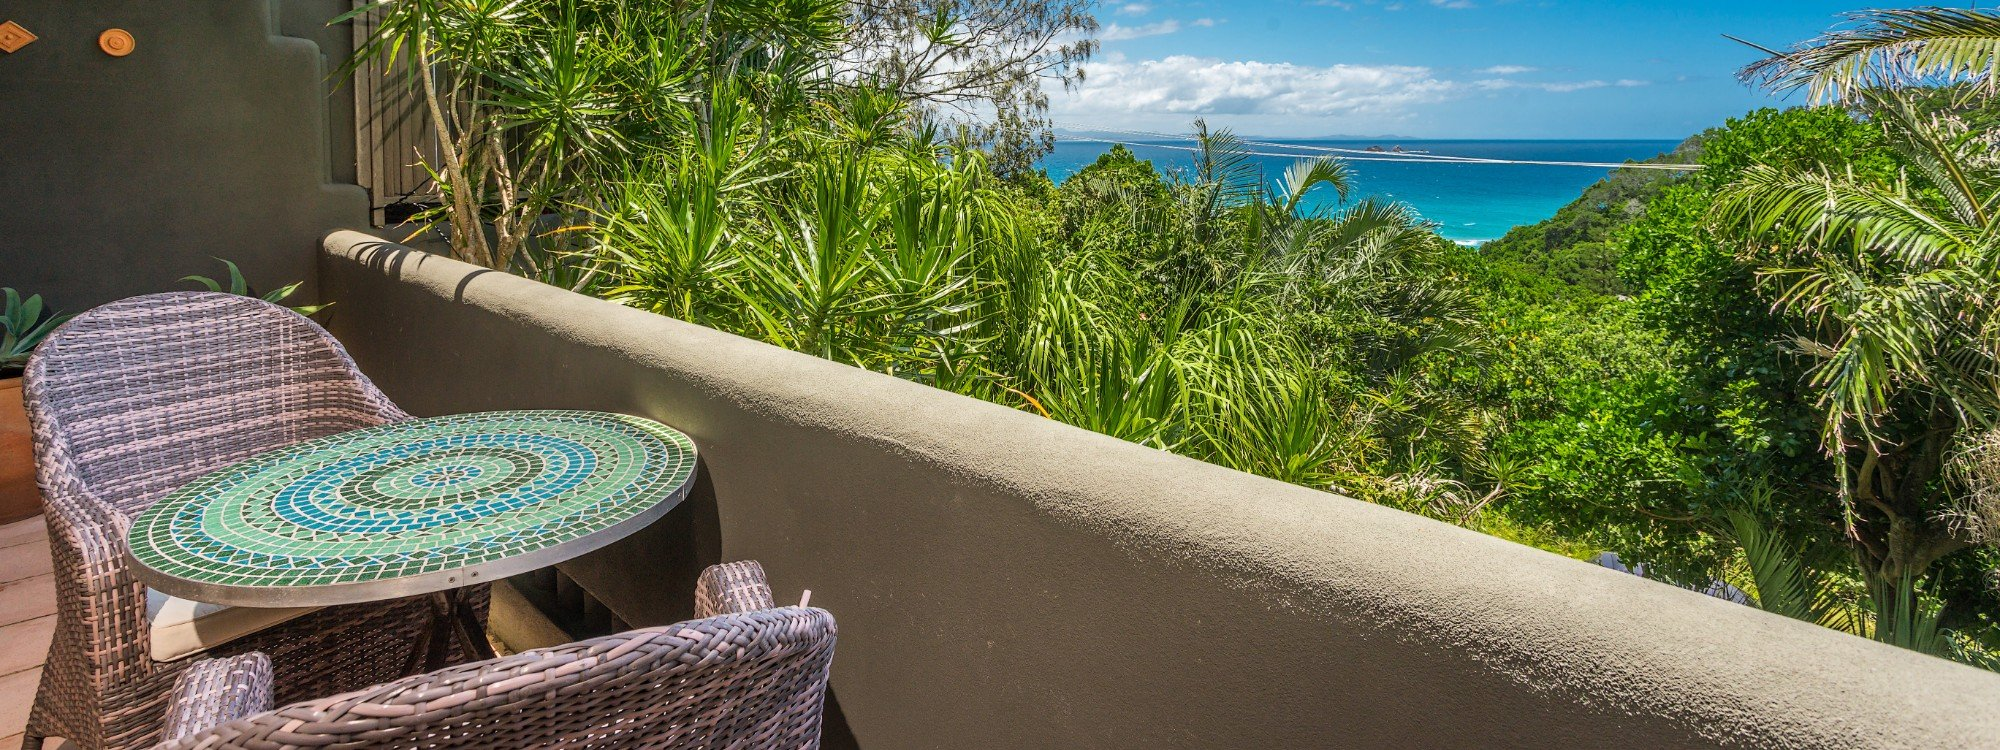 Wategos Retreats Apartment - Wategos Beach - Byron Bay - Apartment balcony and view